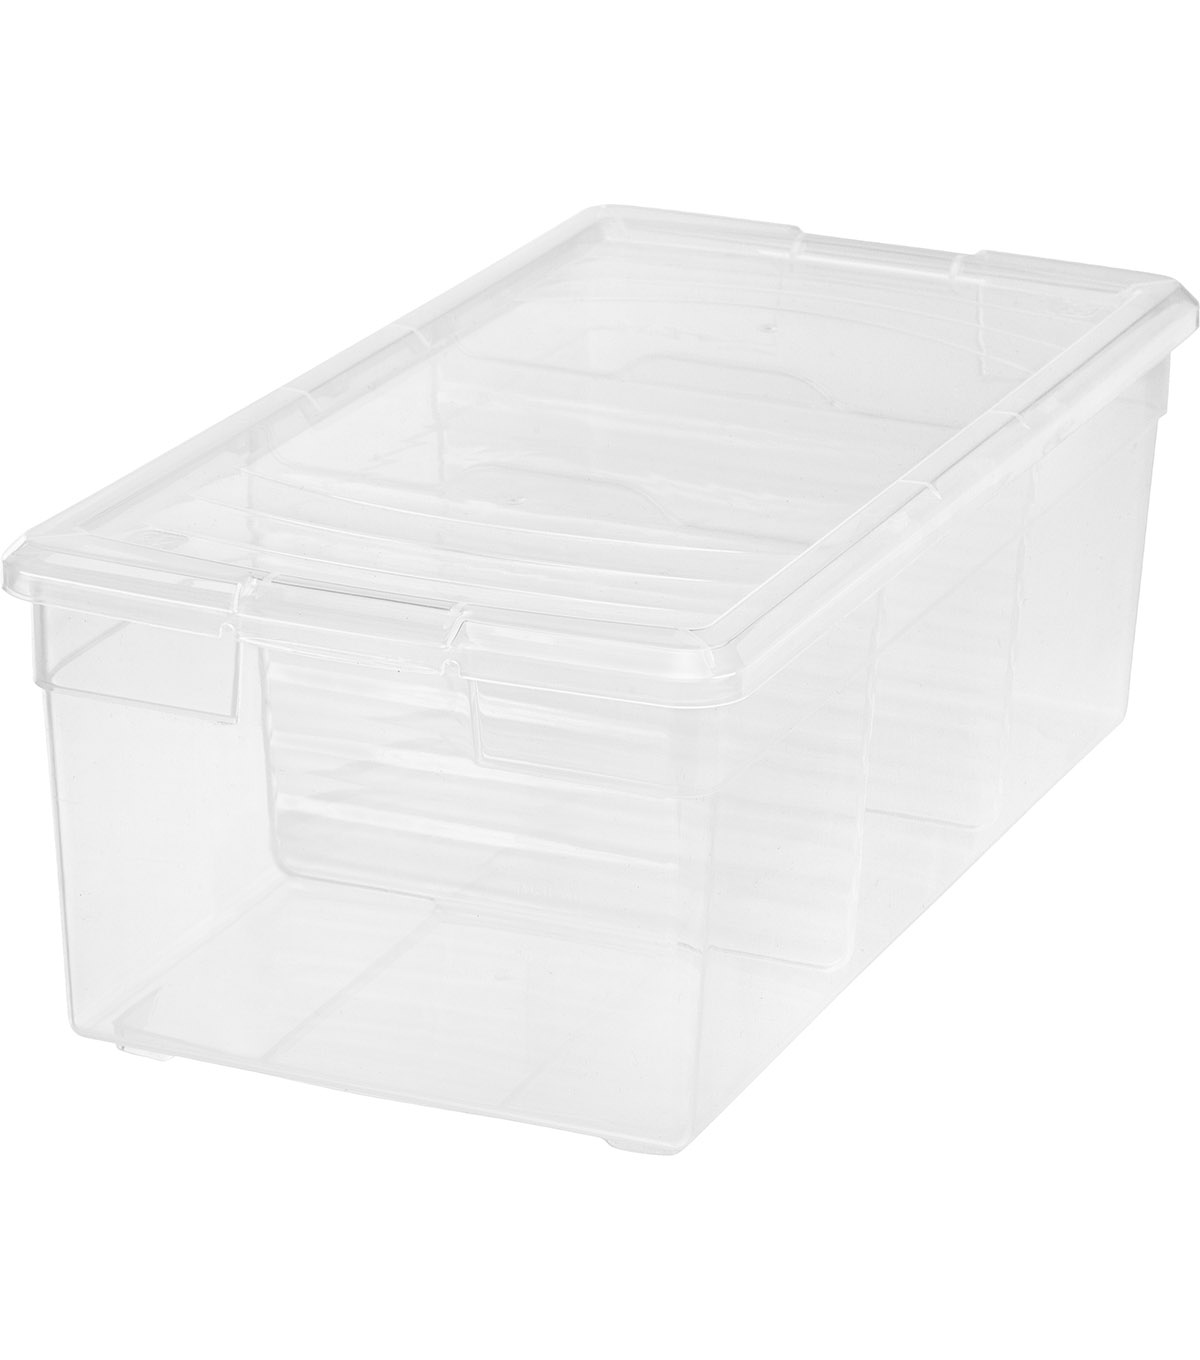 Delicieux Iris CD/Media Divided Storage Box